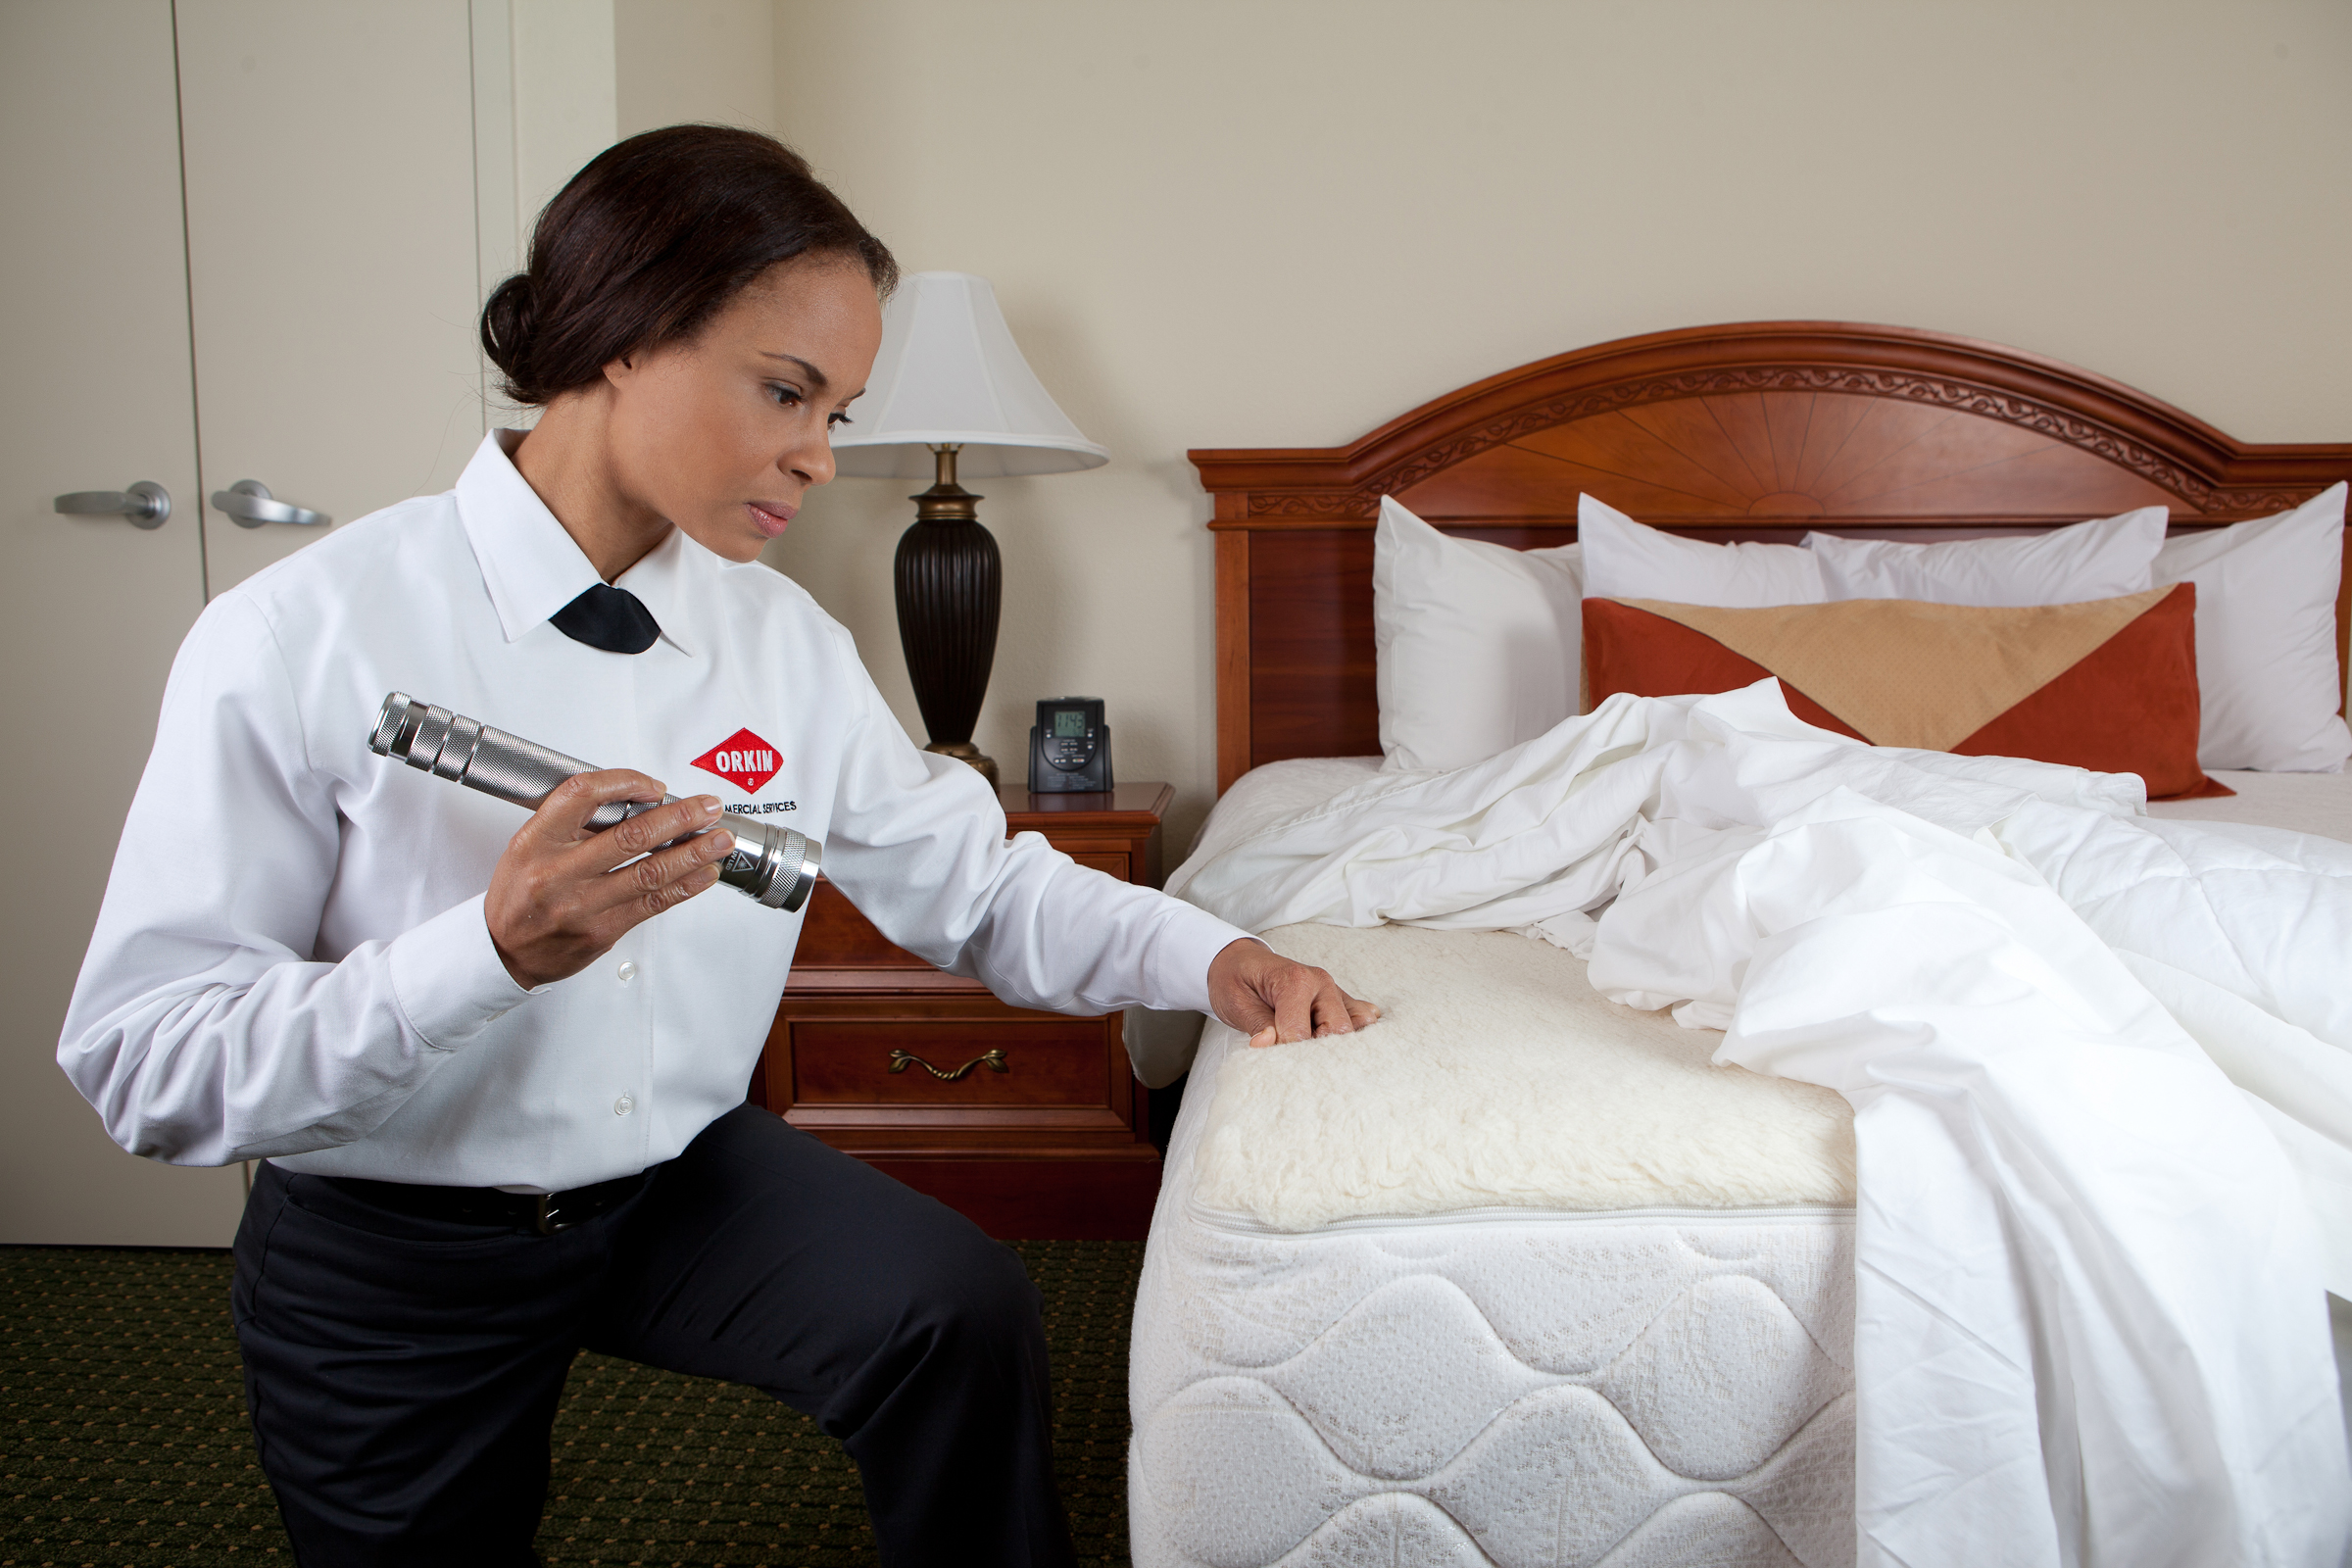 Tips for Pest Control in Hospitality